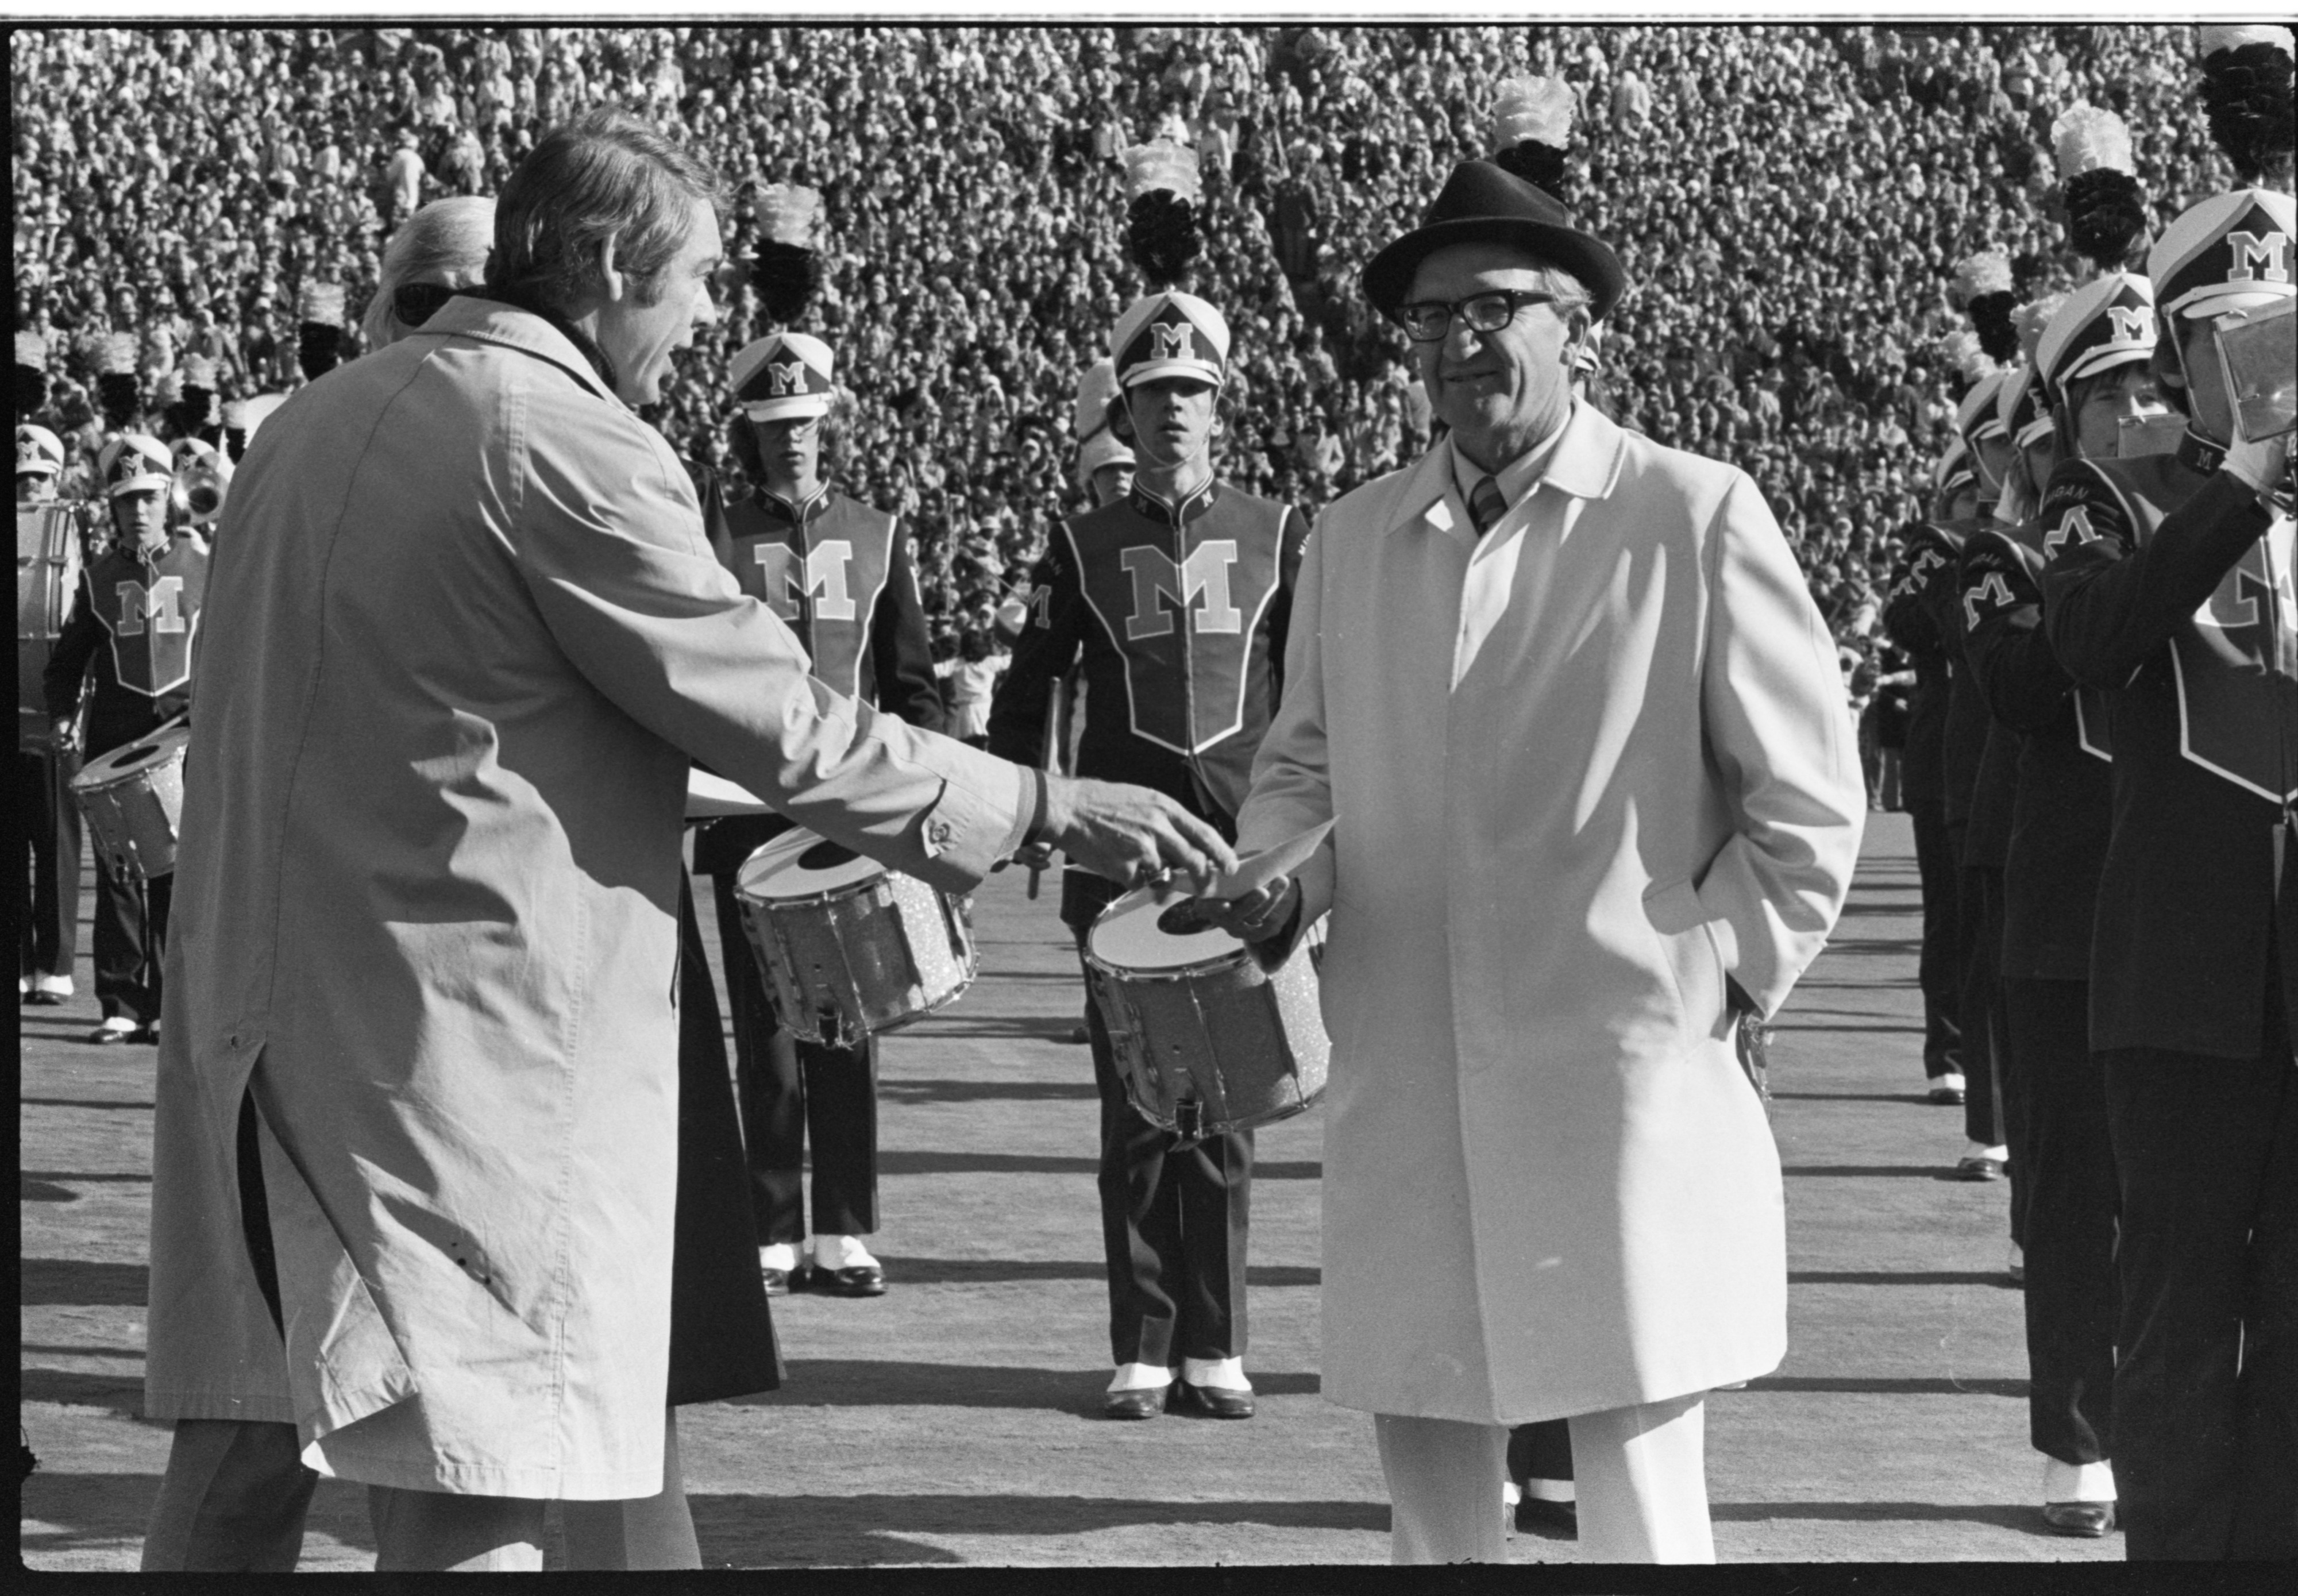 Bob Ufer Honored at Halftime of Michigan - Ohio State Game, November 1975 image